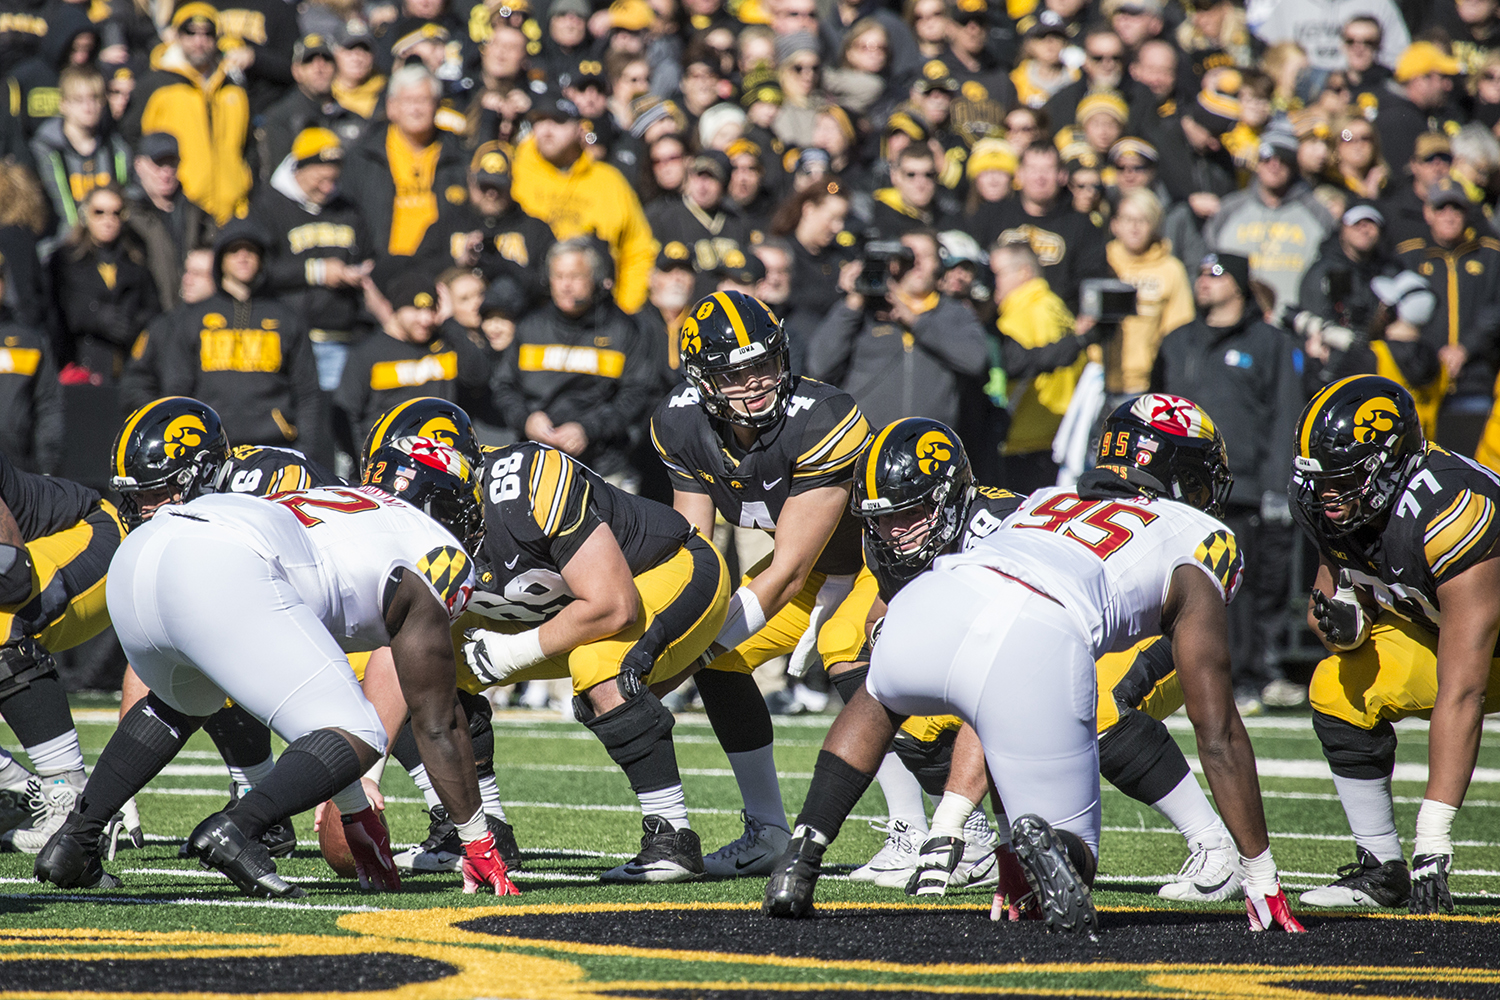 Iowa+quarterback+Nate+Stanley+surveys+the+defense+during+a+football+game+between+Iowa+and+Maryland+in+Kinnick+Stadium+on+Saturday%2C+October+20%2C+2018.+The+Hawkeyes+defeated+the+Terrapins%2C+23-0.